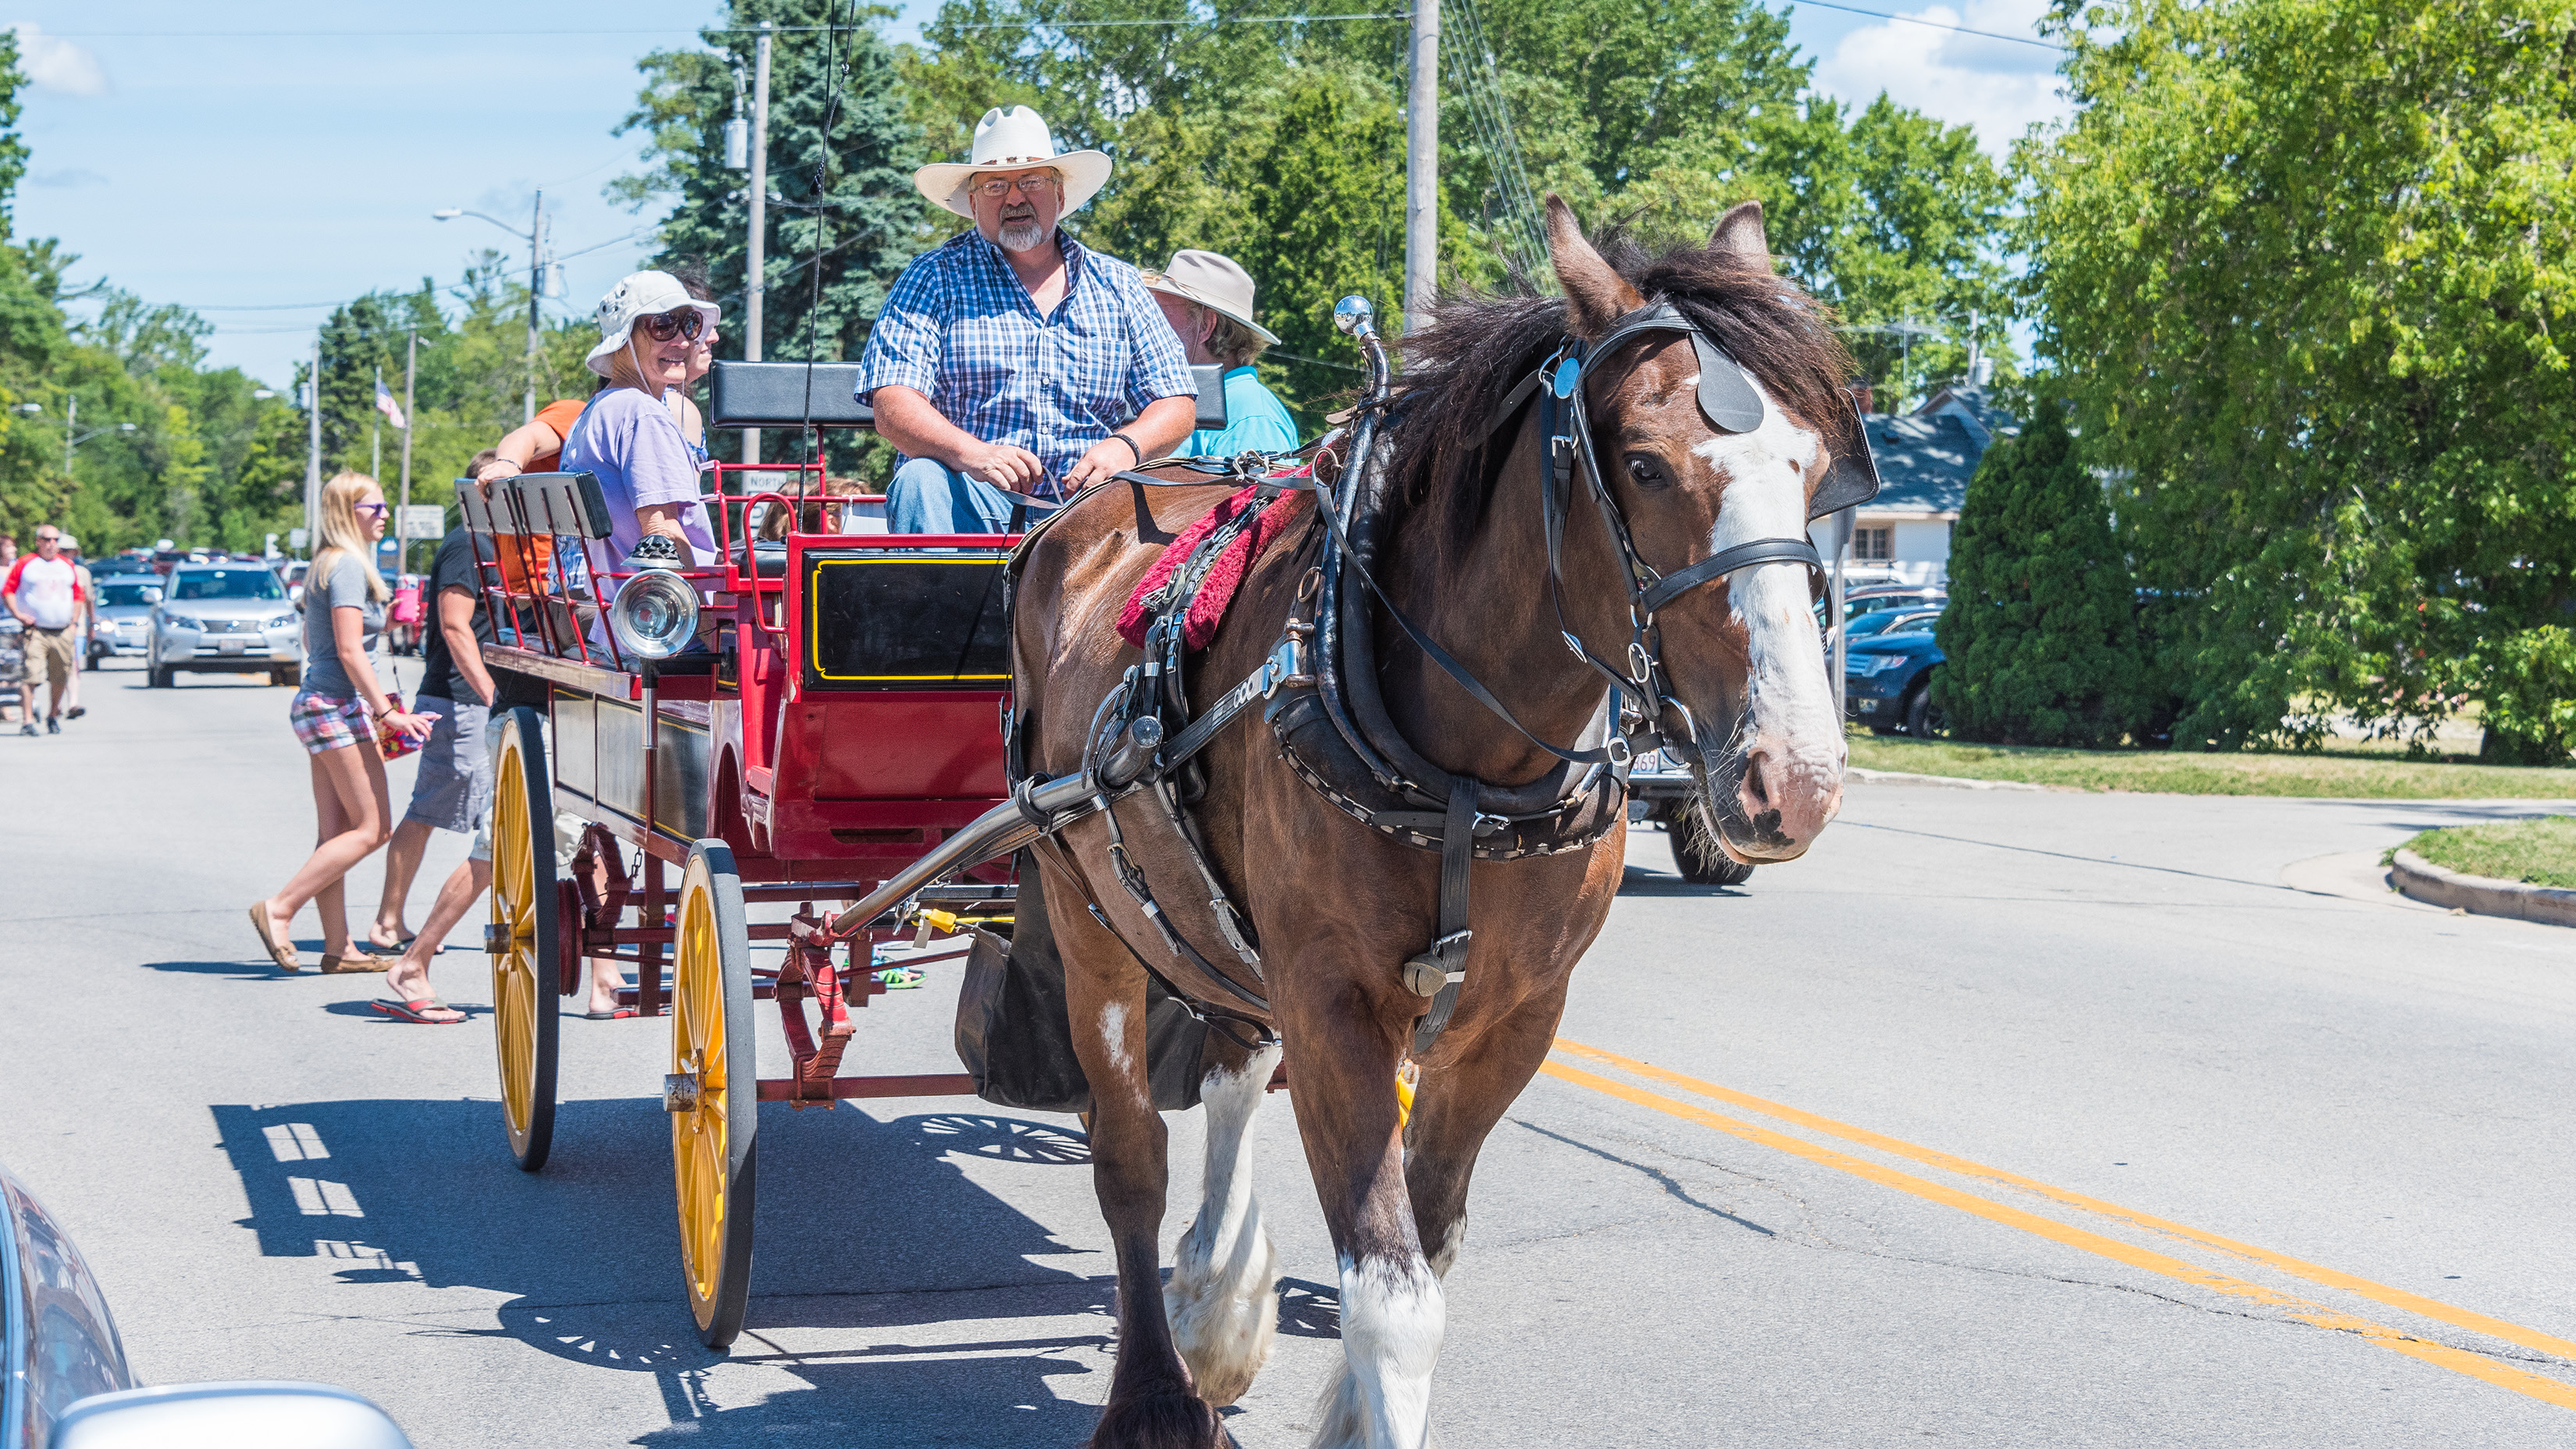 Cherry Festival in Jacksonport, Door County, WI. Photo by Len Villano.